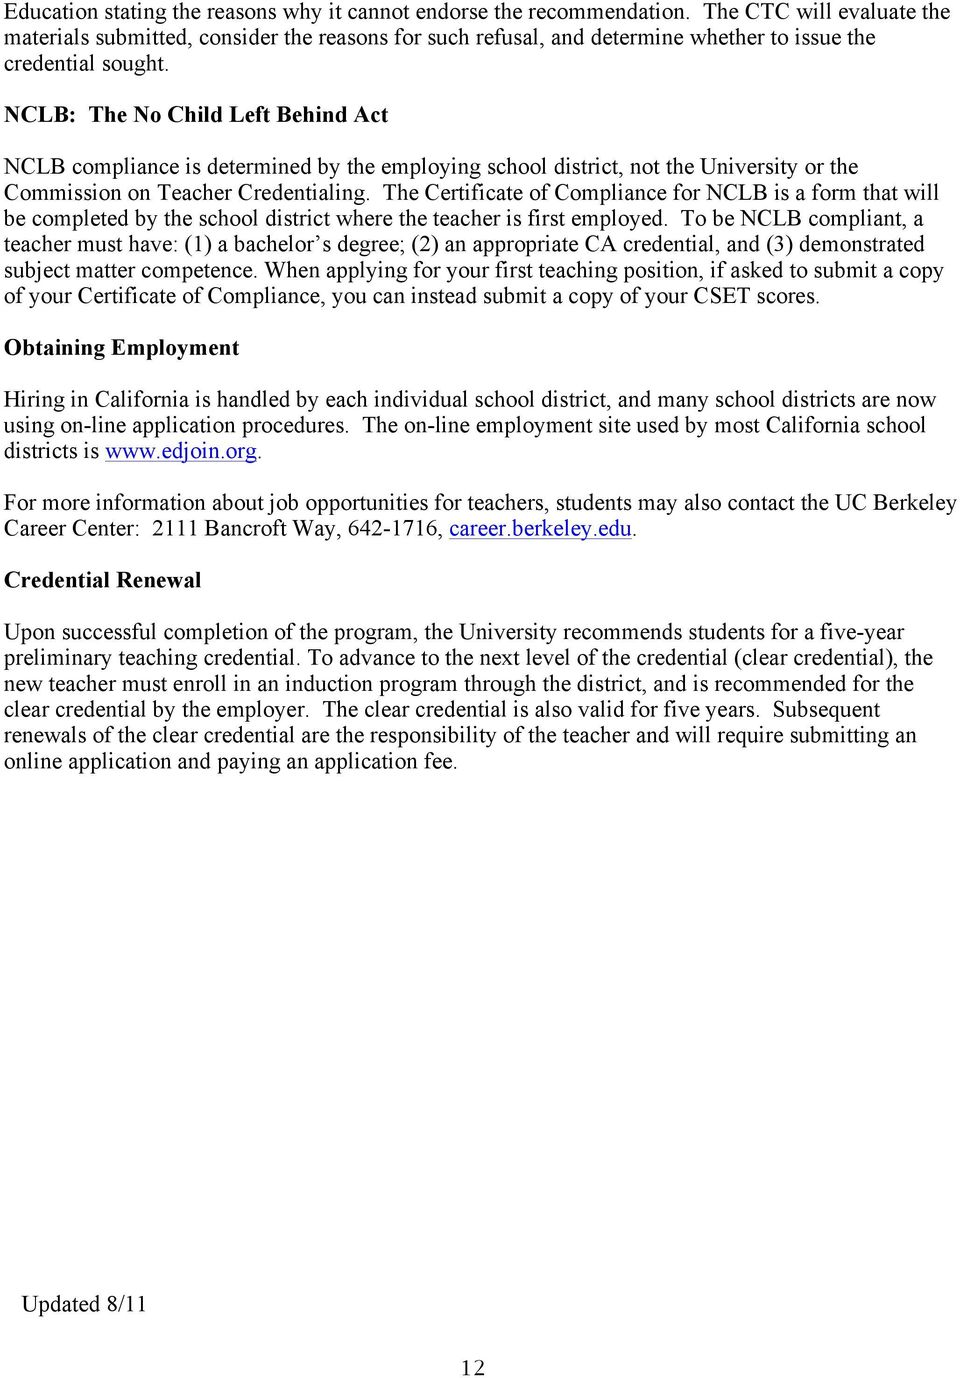 NCLB: The No Child Left Behind Act NCLB compliance is determined by the employing school district, not the University or the Commission on Teacher Credentialing.